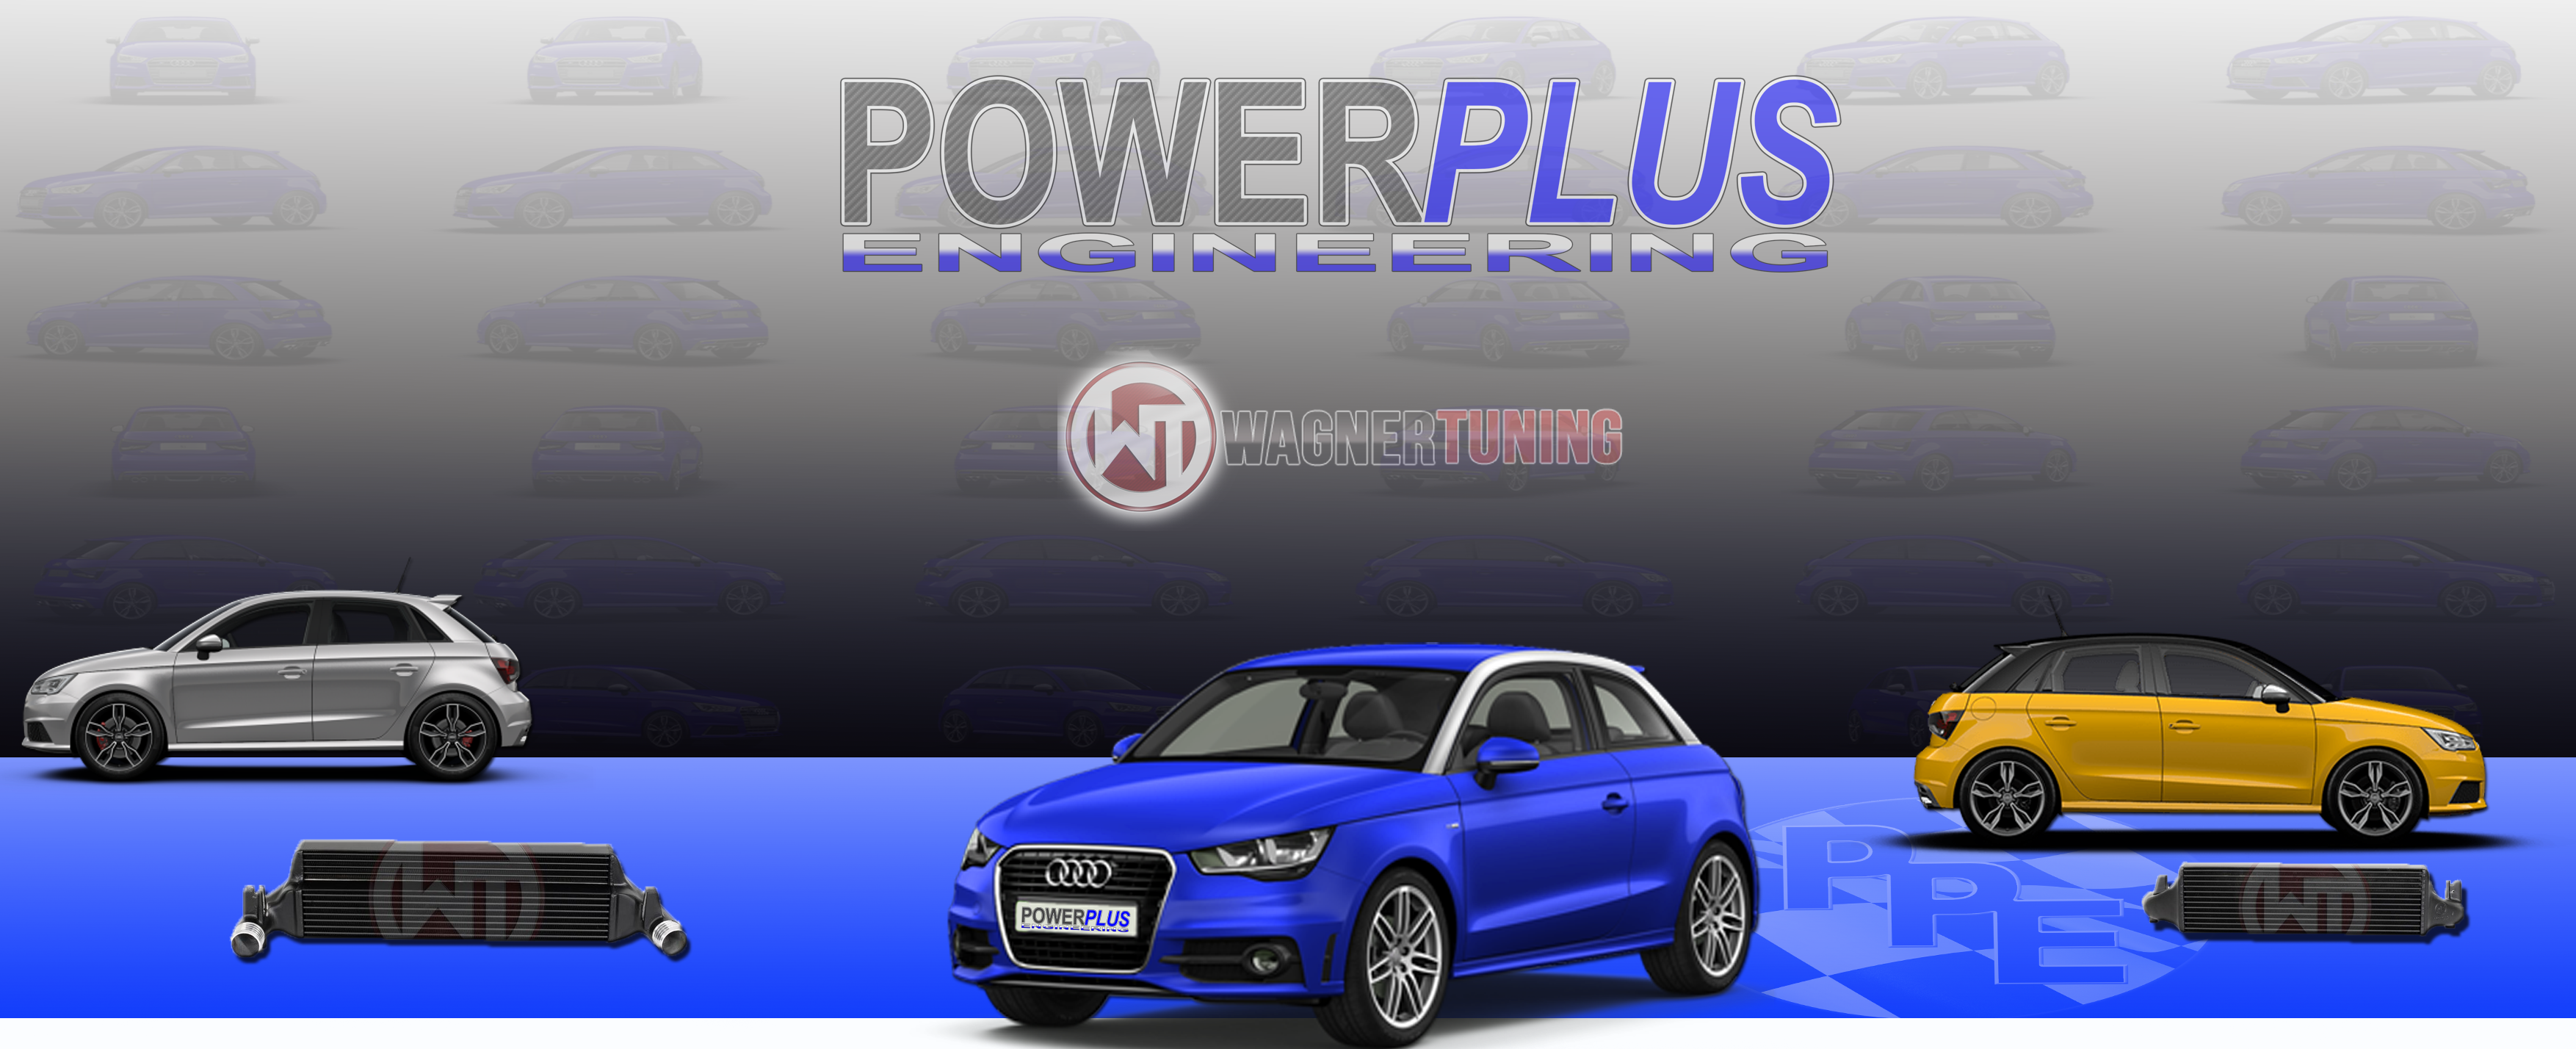 Wagner Tuning Competition Intercooler Kit For Audi S Power Plus - Wagner audi